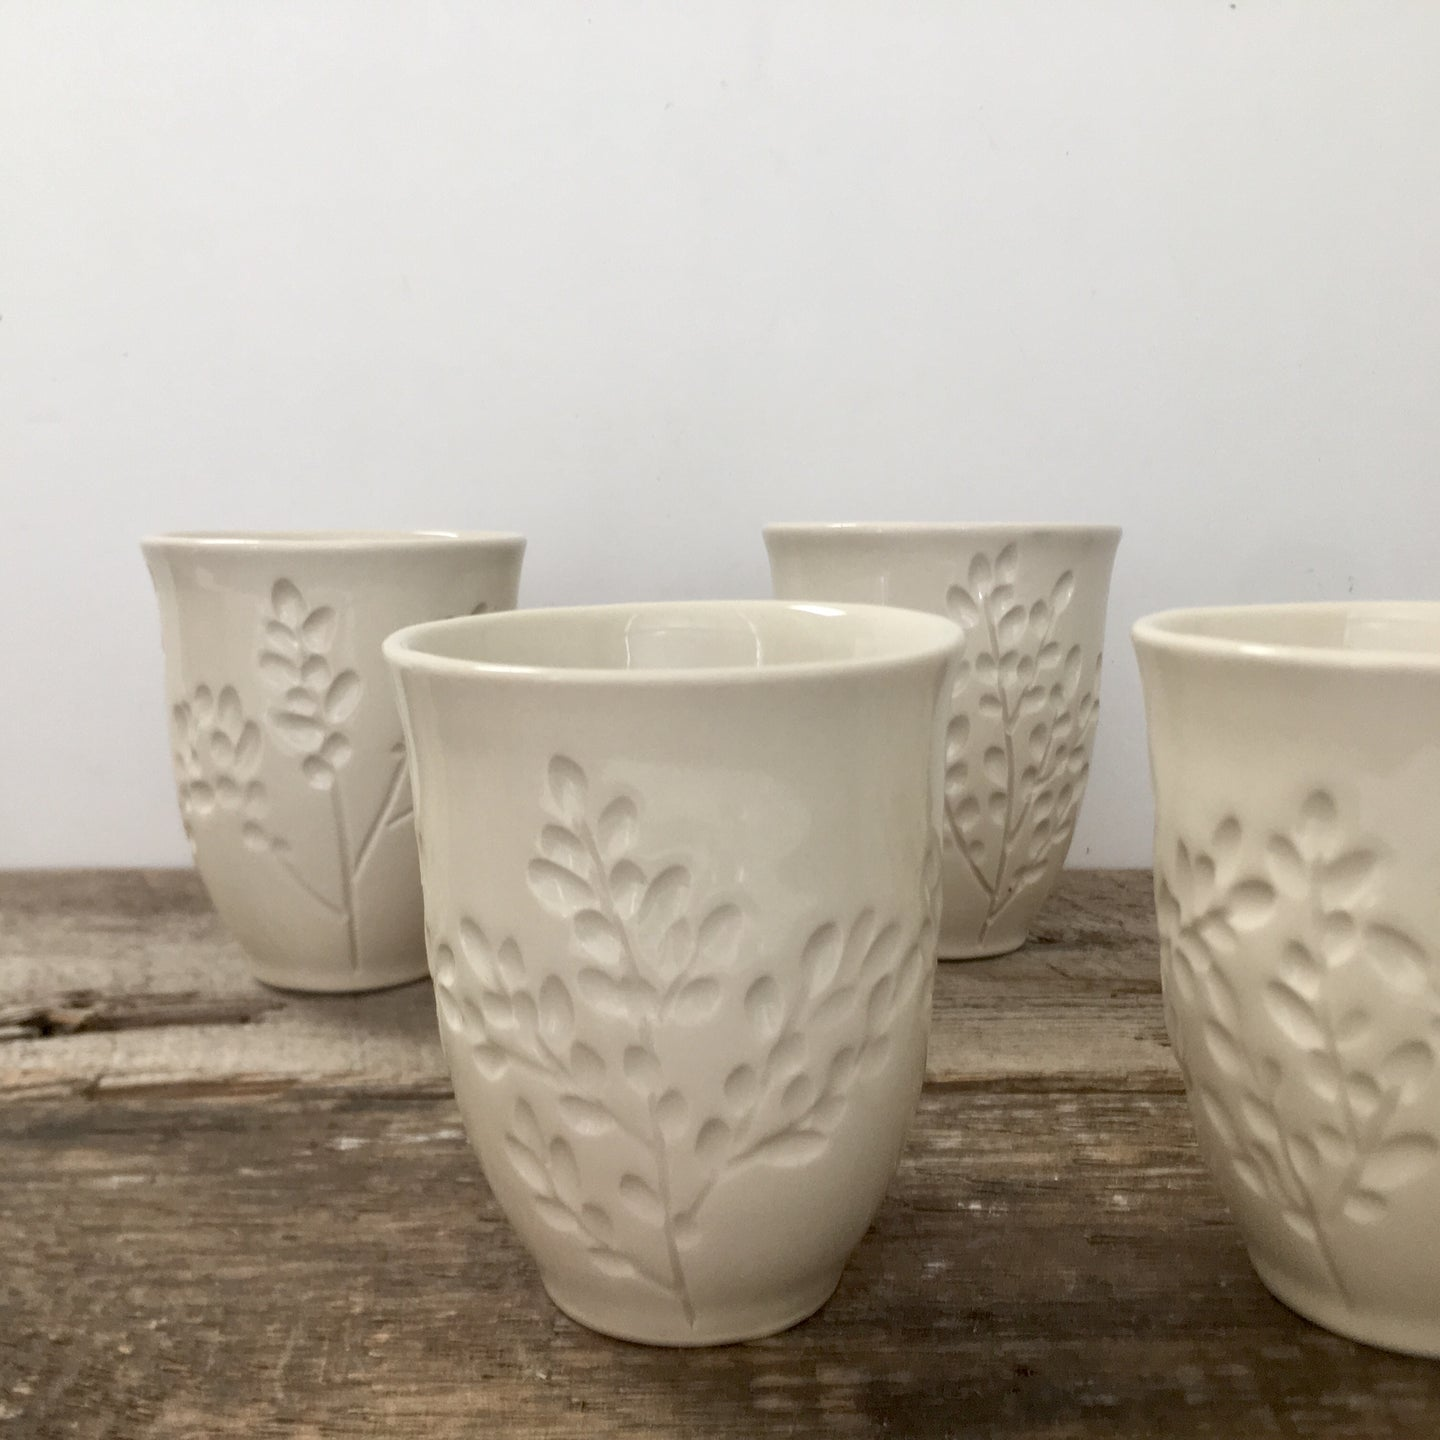 IVORY WINE CUPS WITH CARVED BRANCHES